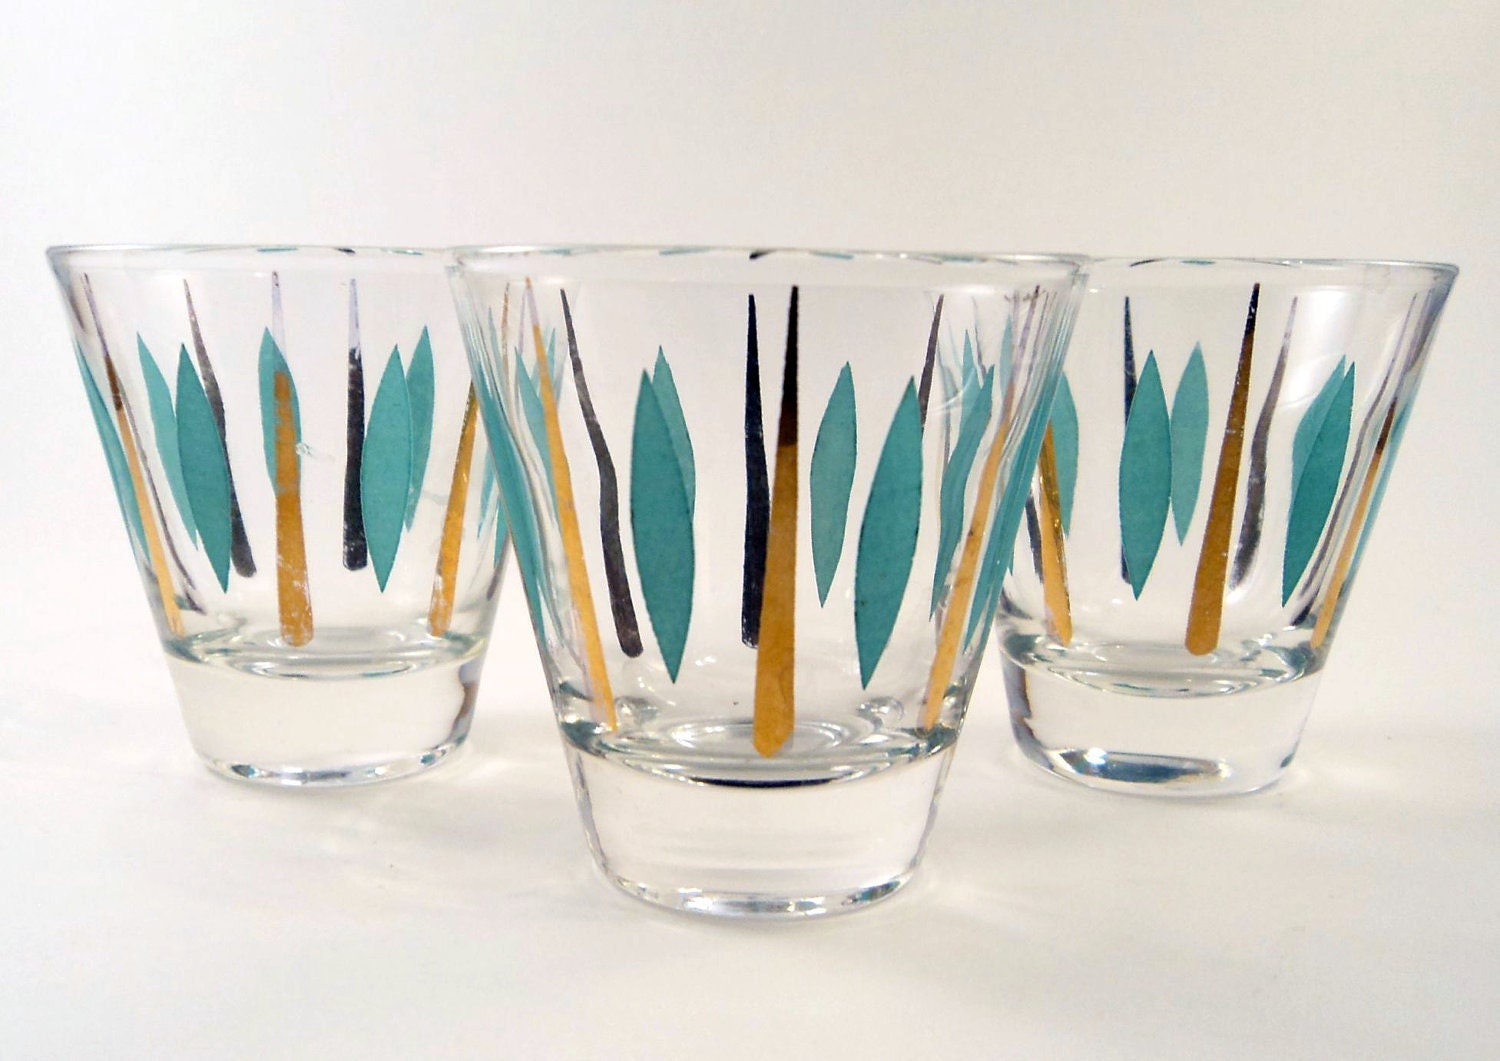 3 Mod Teal and Gold Shotglasses